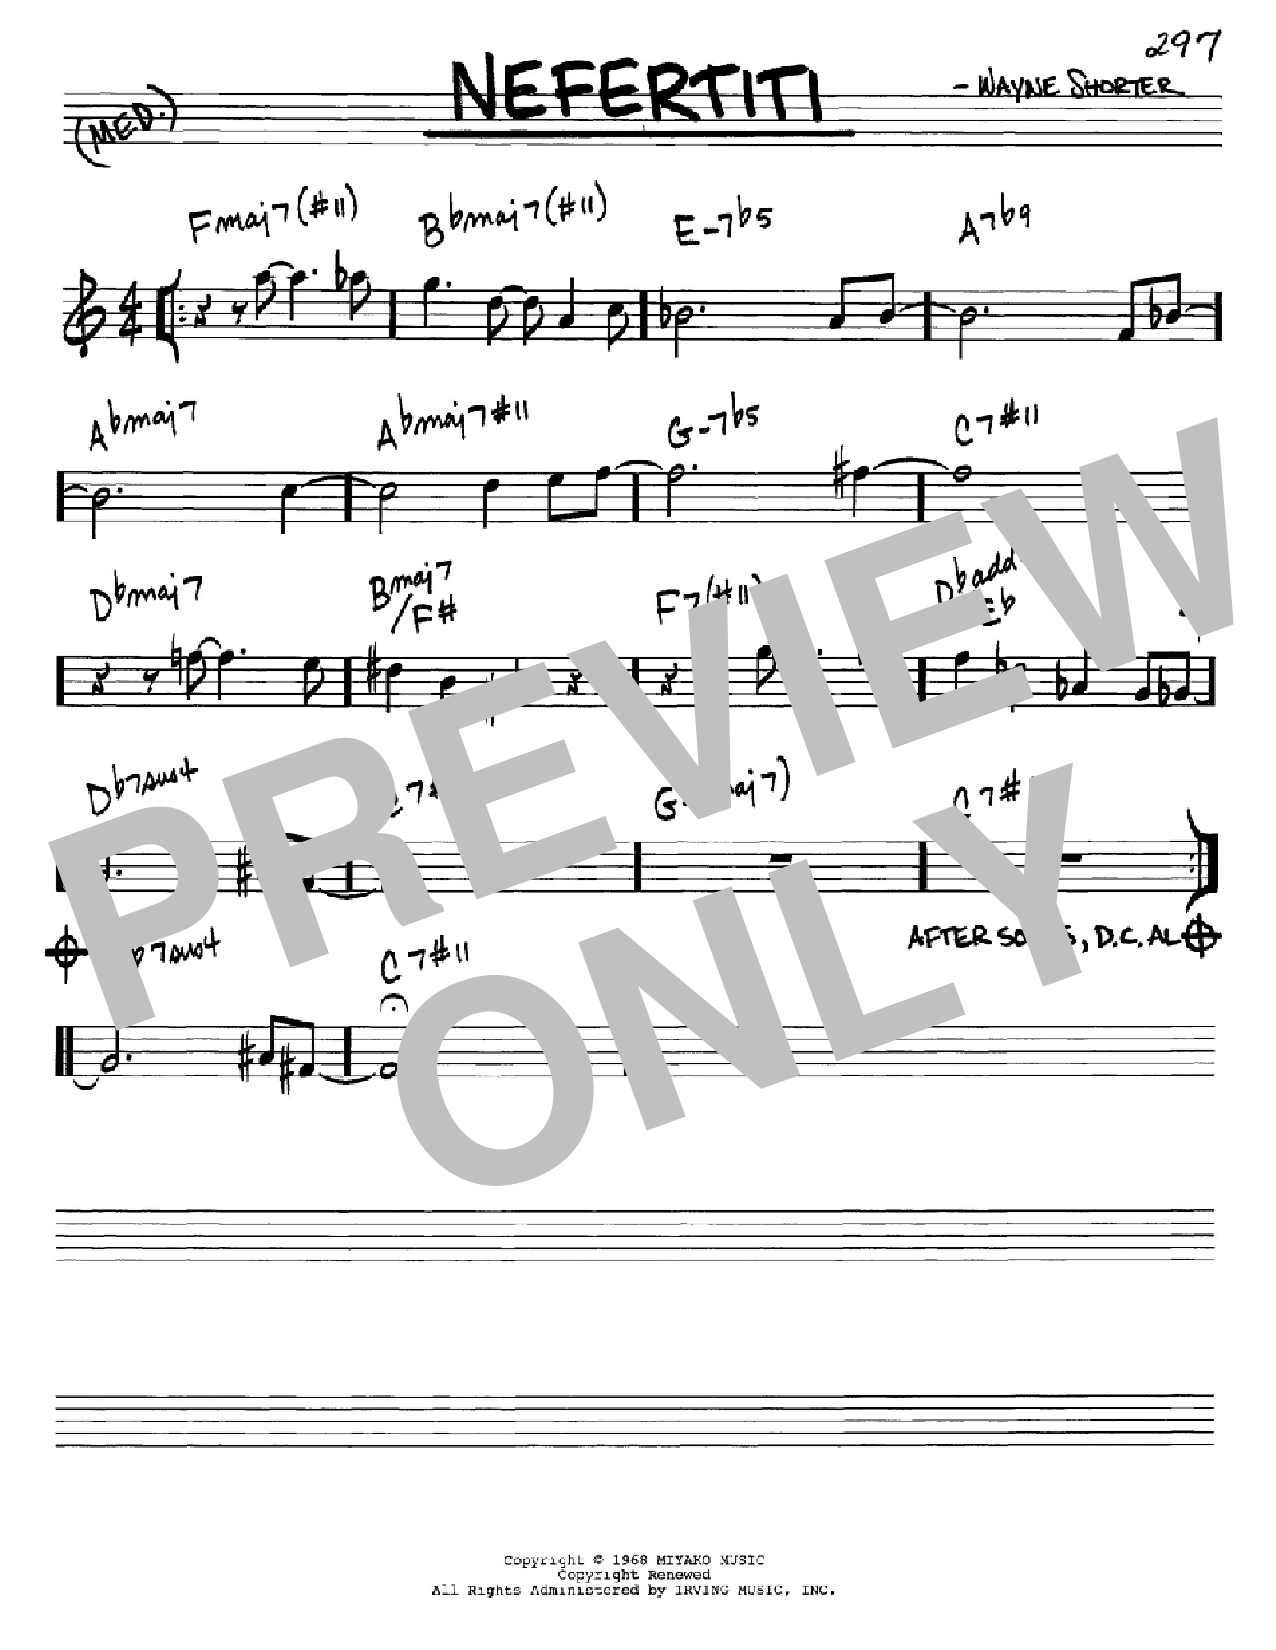 Nefertiti Sheet Music